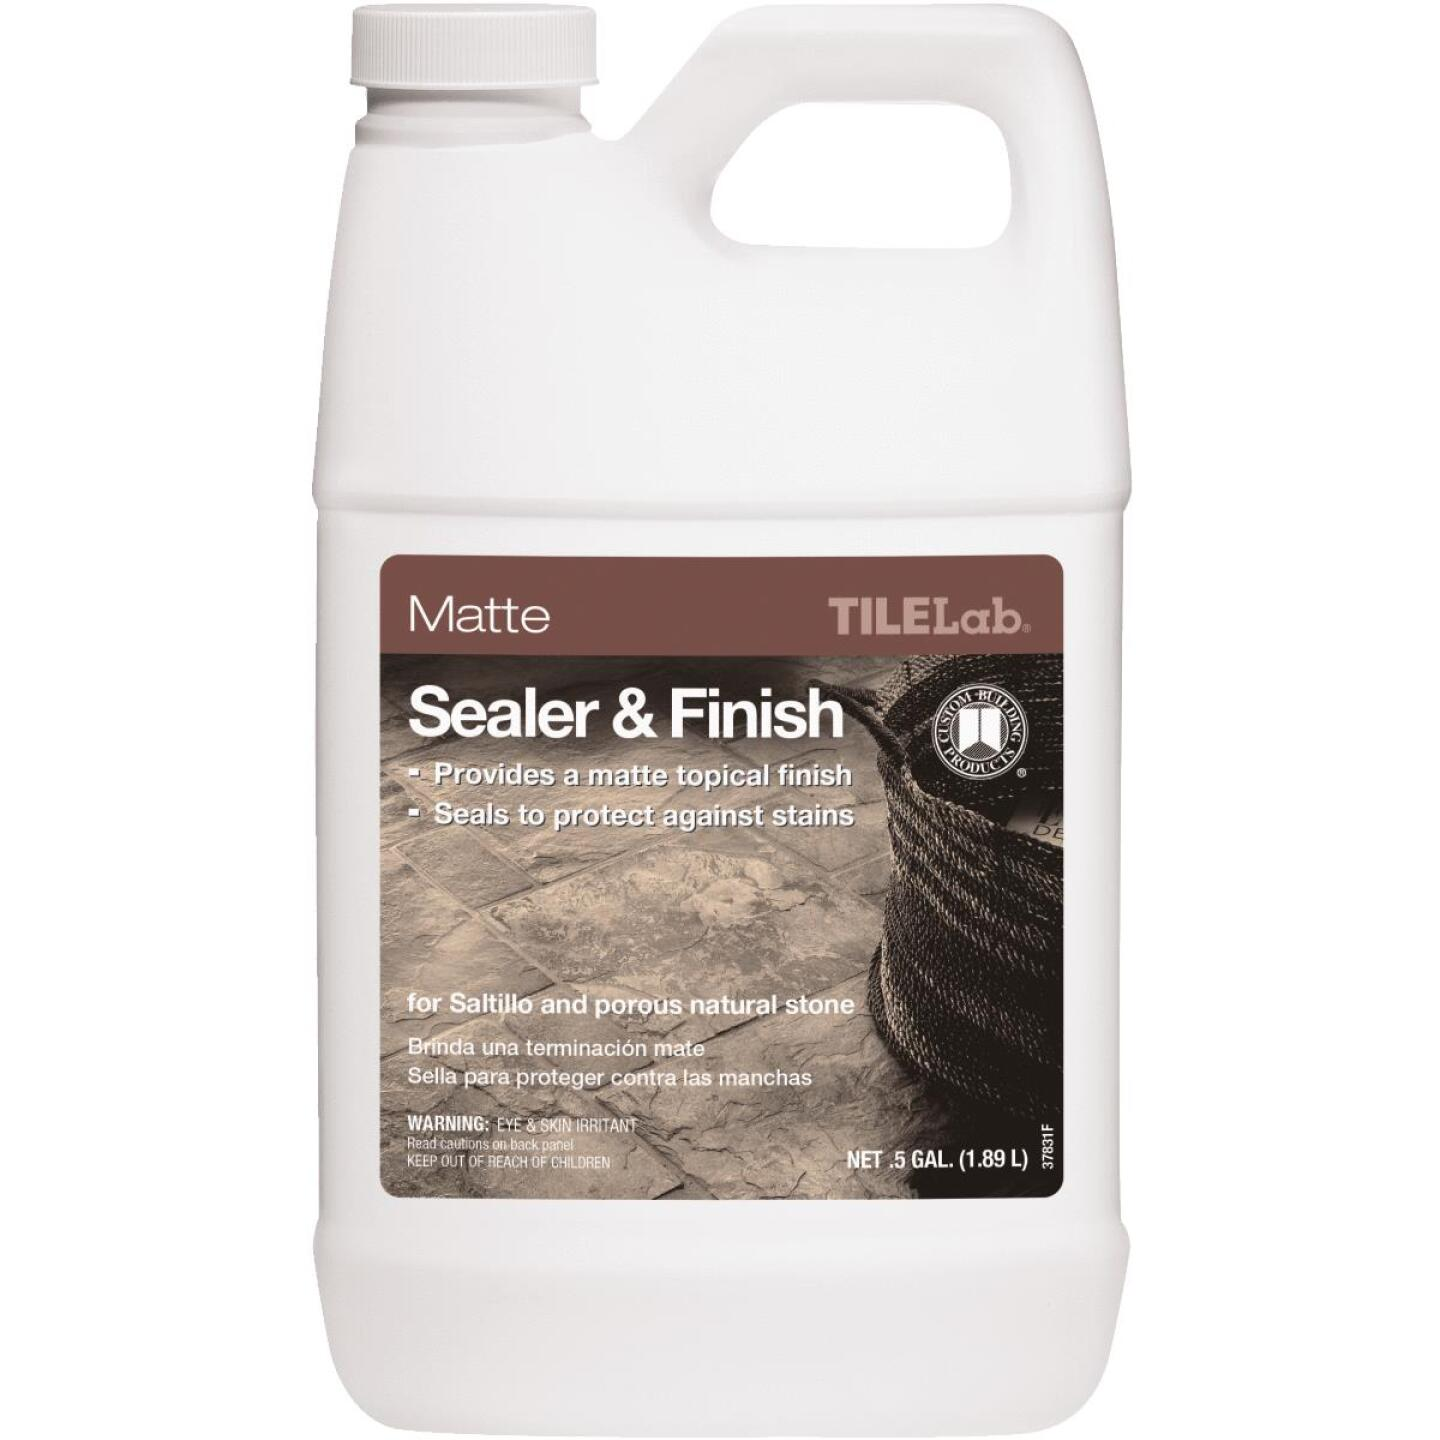 Custom Building Products TILELab 1/2 Gal. Matte Tile Sealer & Finish Image 1